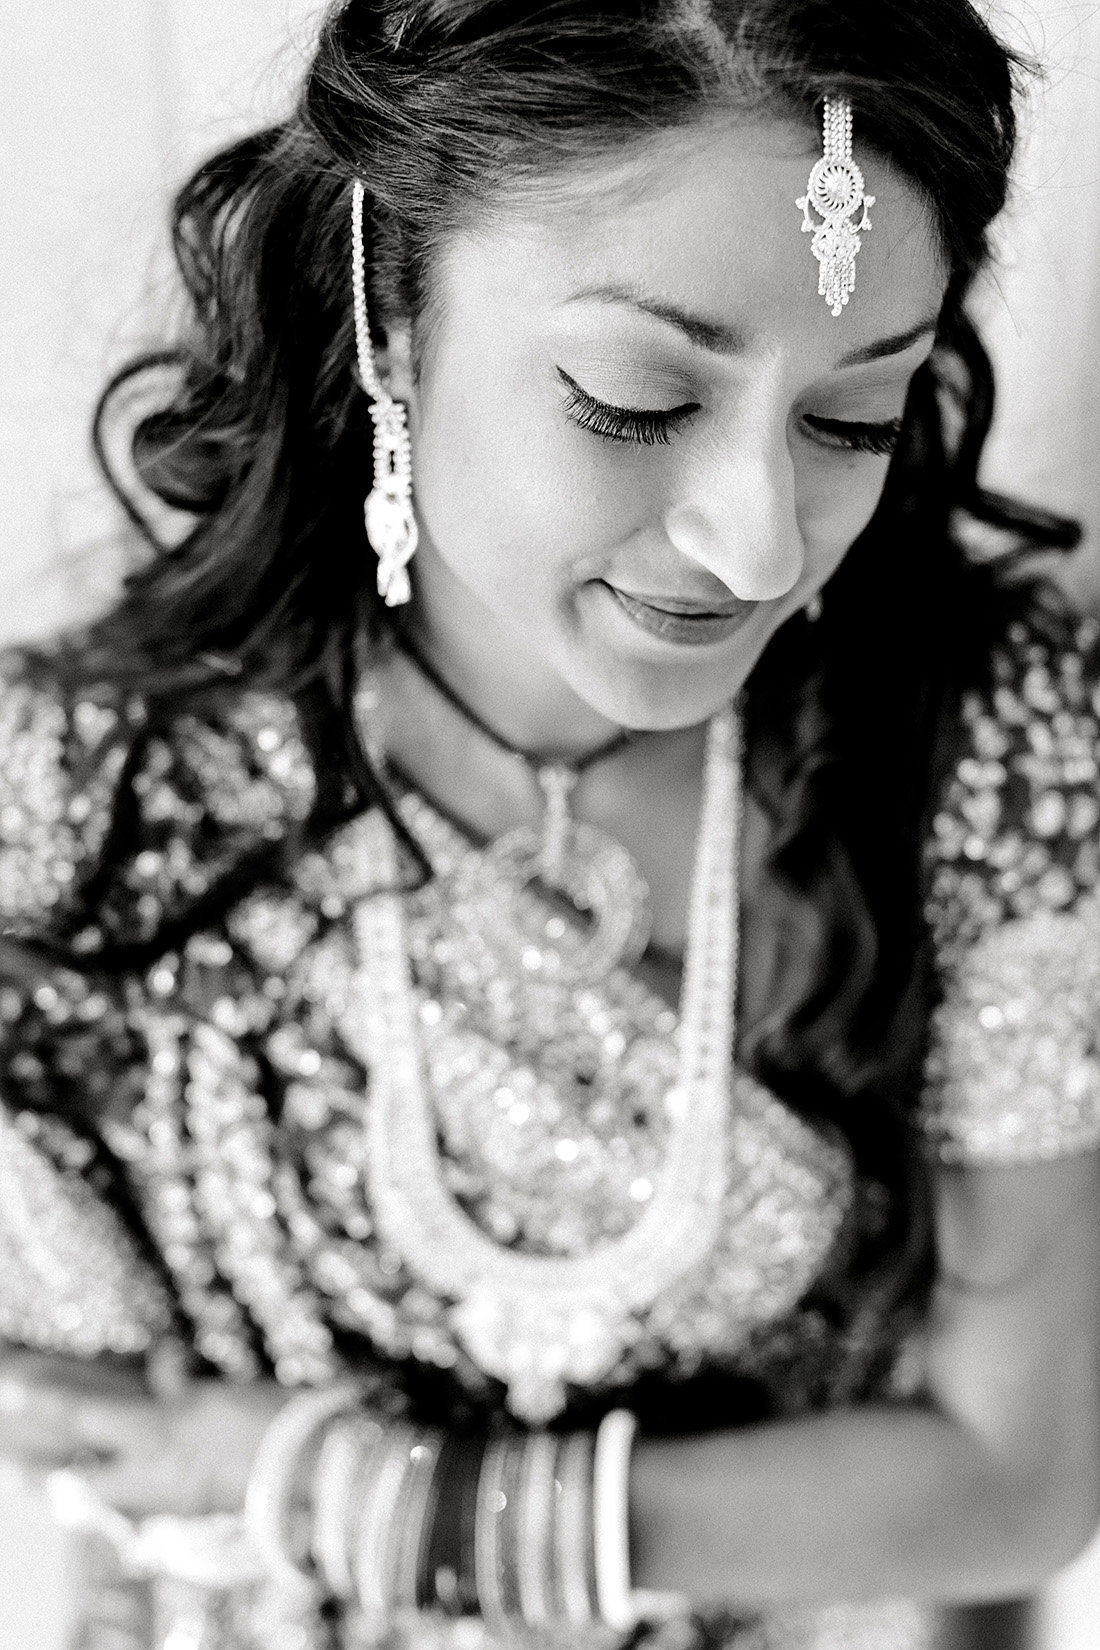 A classic indian bride before her Hindu wedding